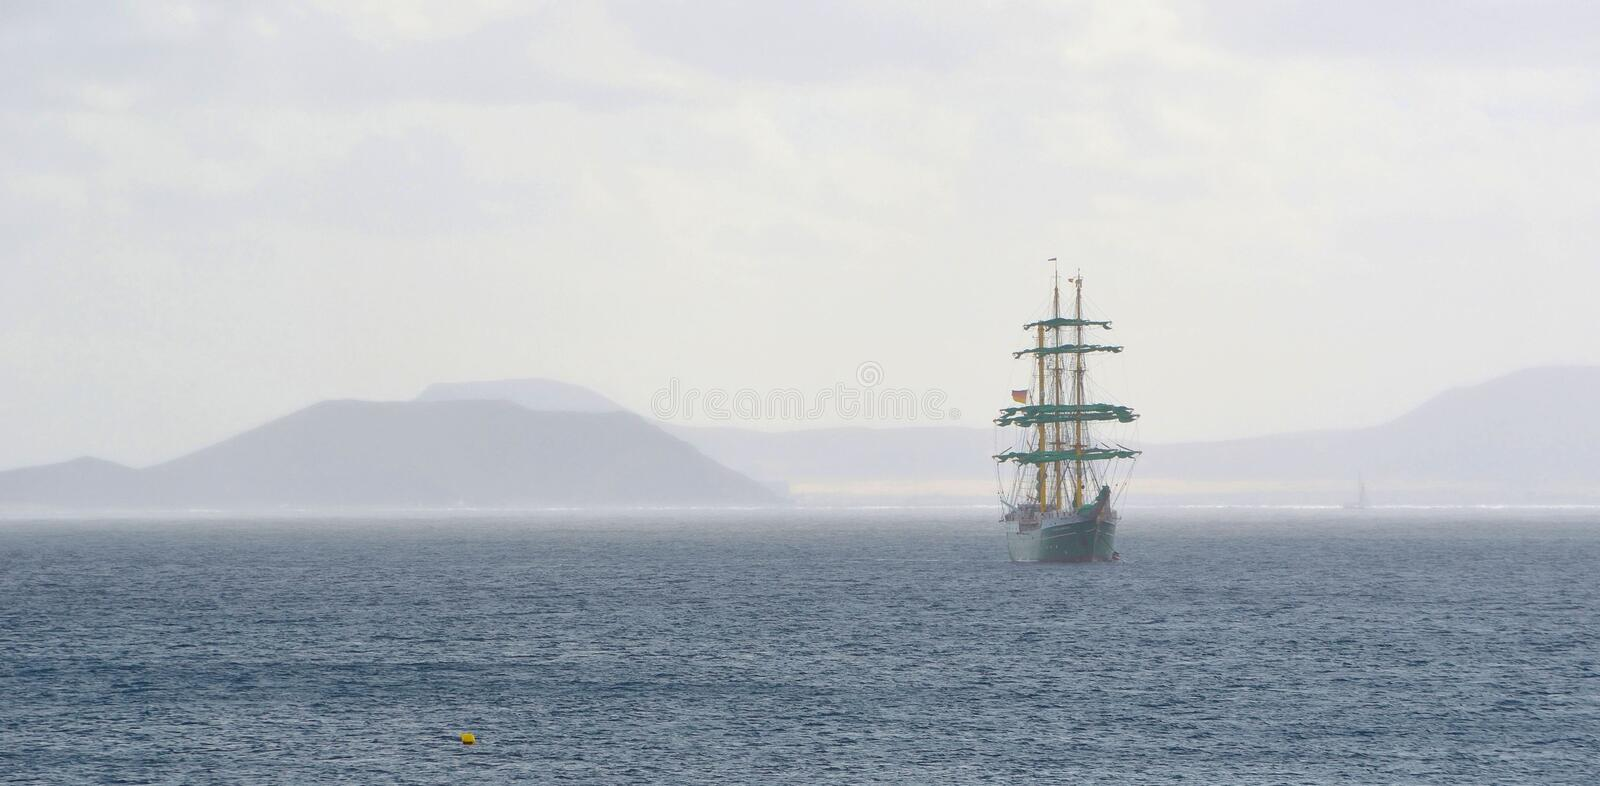 Square Rigged Tall Ship royalty free stock image